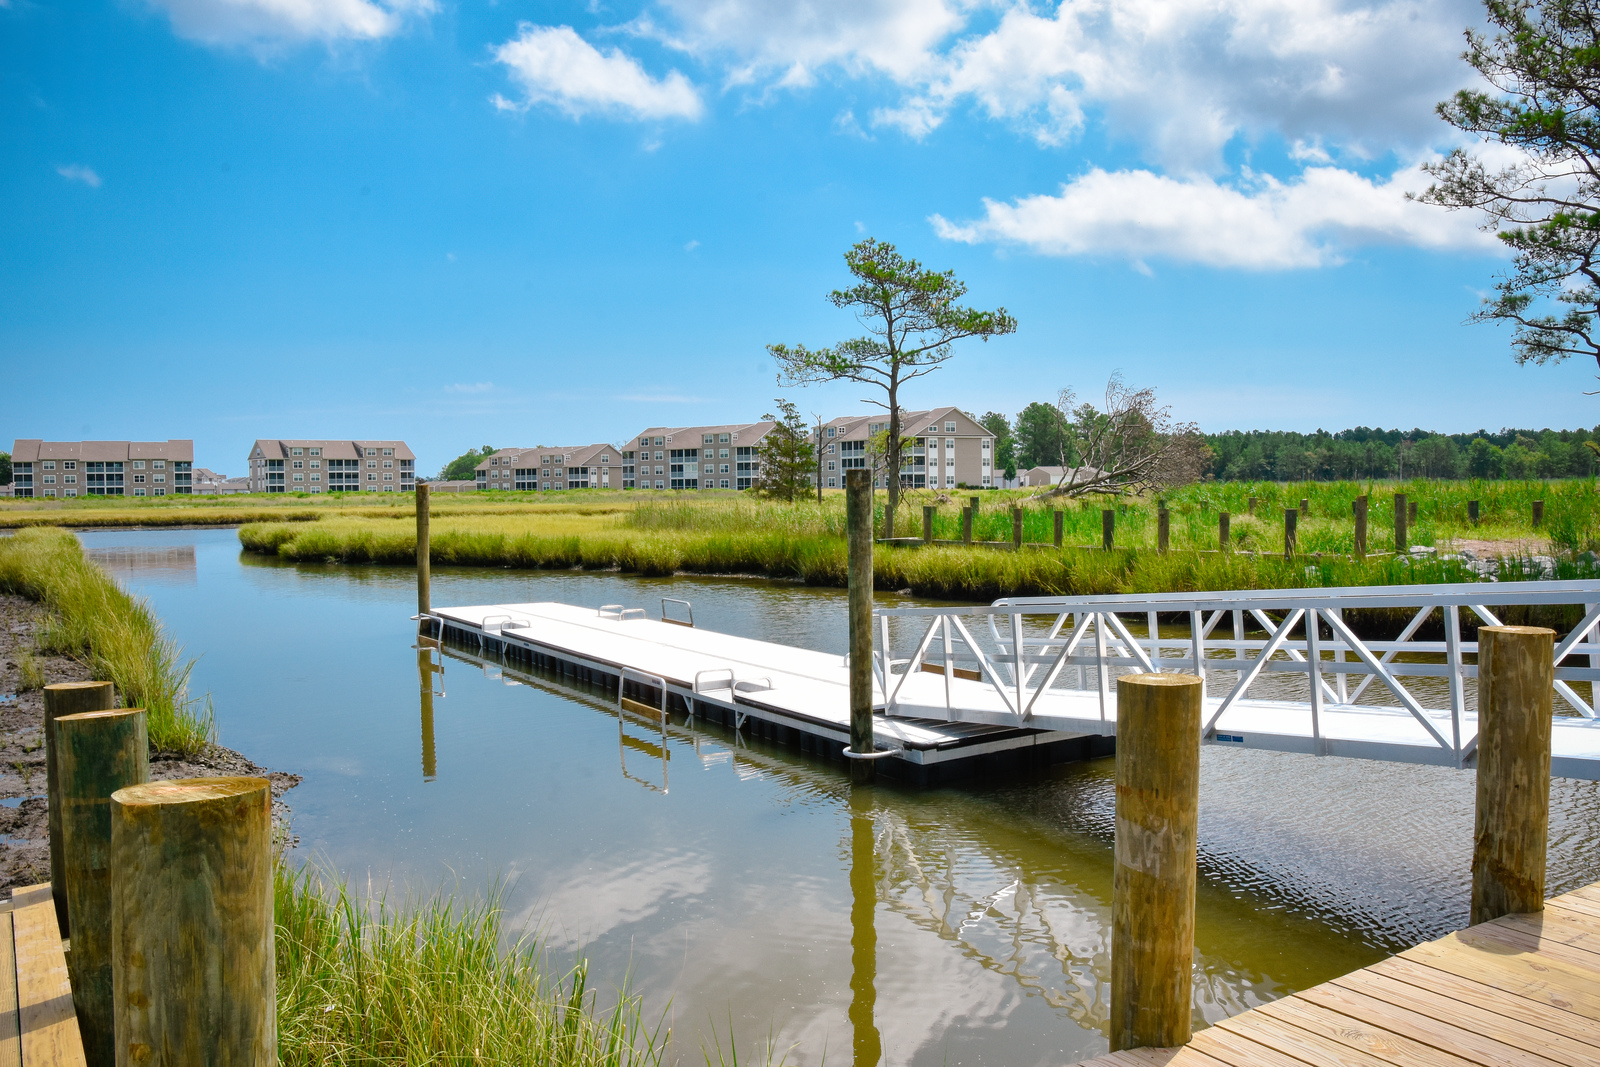 Bay Forest has a spectacular community marina with day slips, kayak and canoe launch